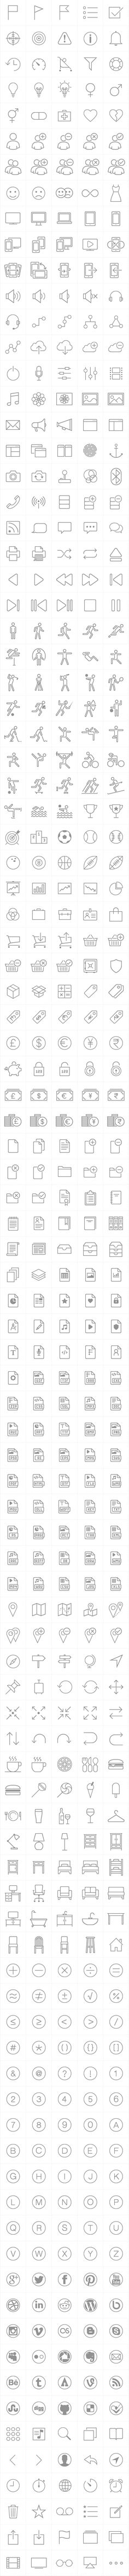 PixelLove | iOS 7 vector tab bar icons for iPhone  iPad apps